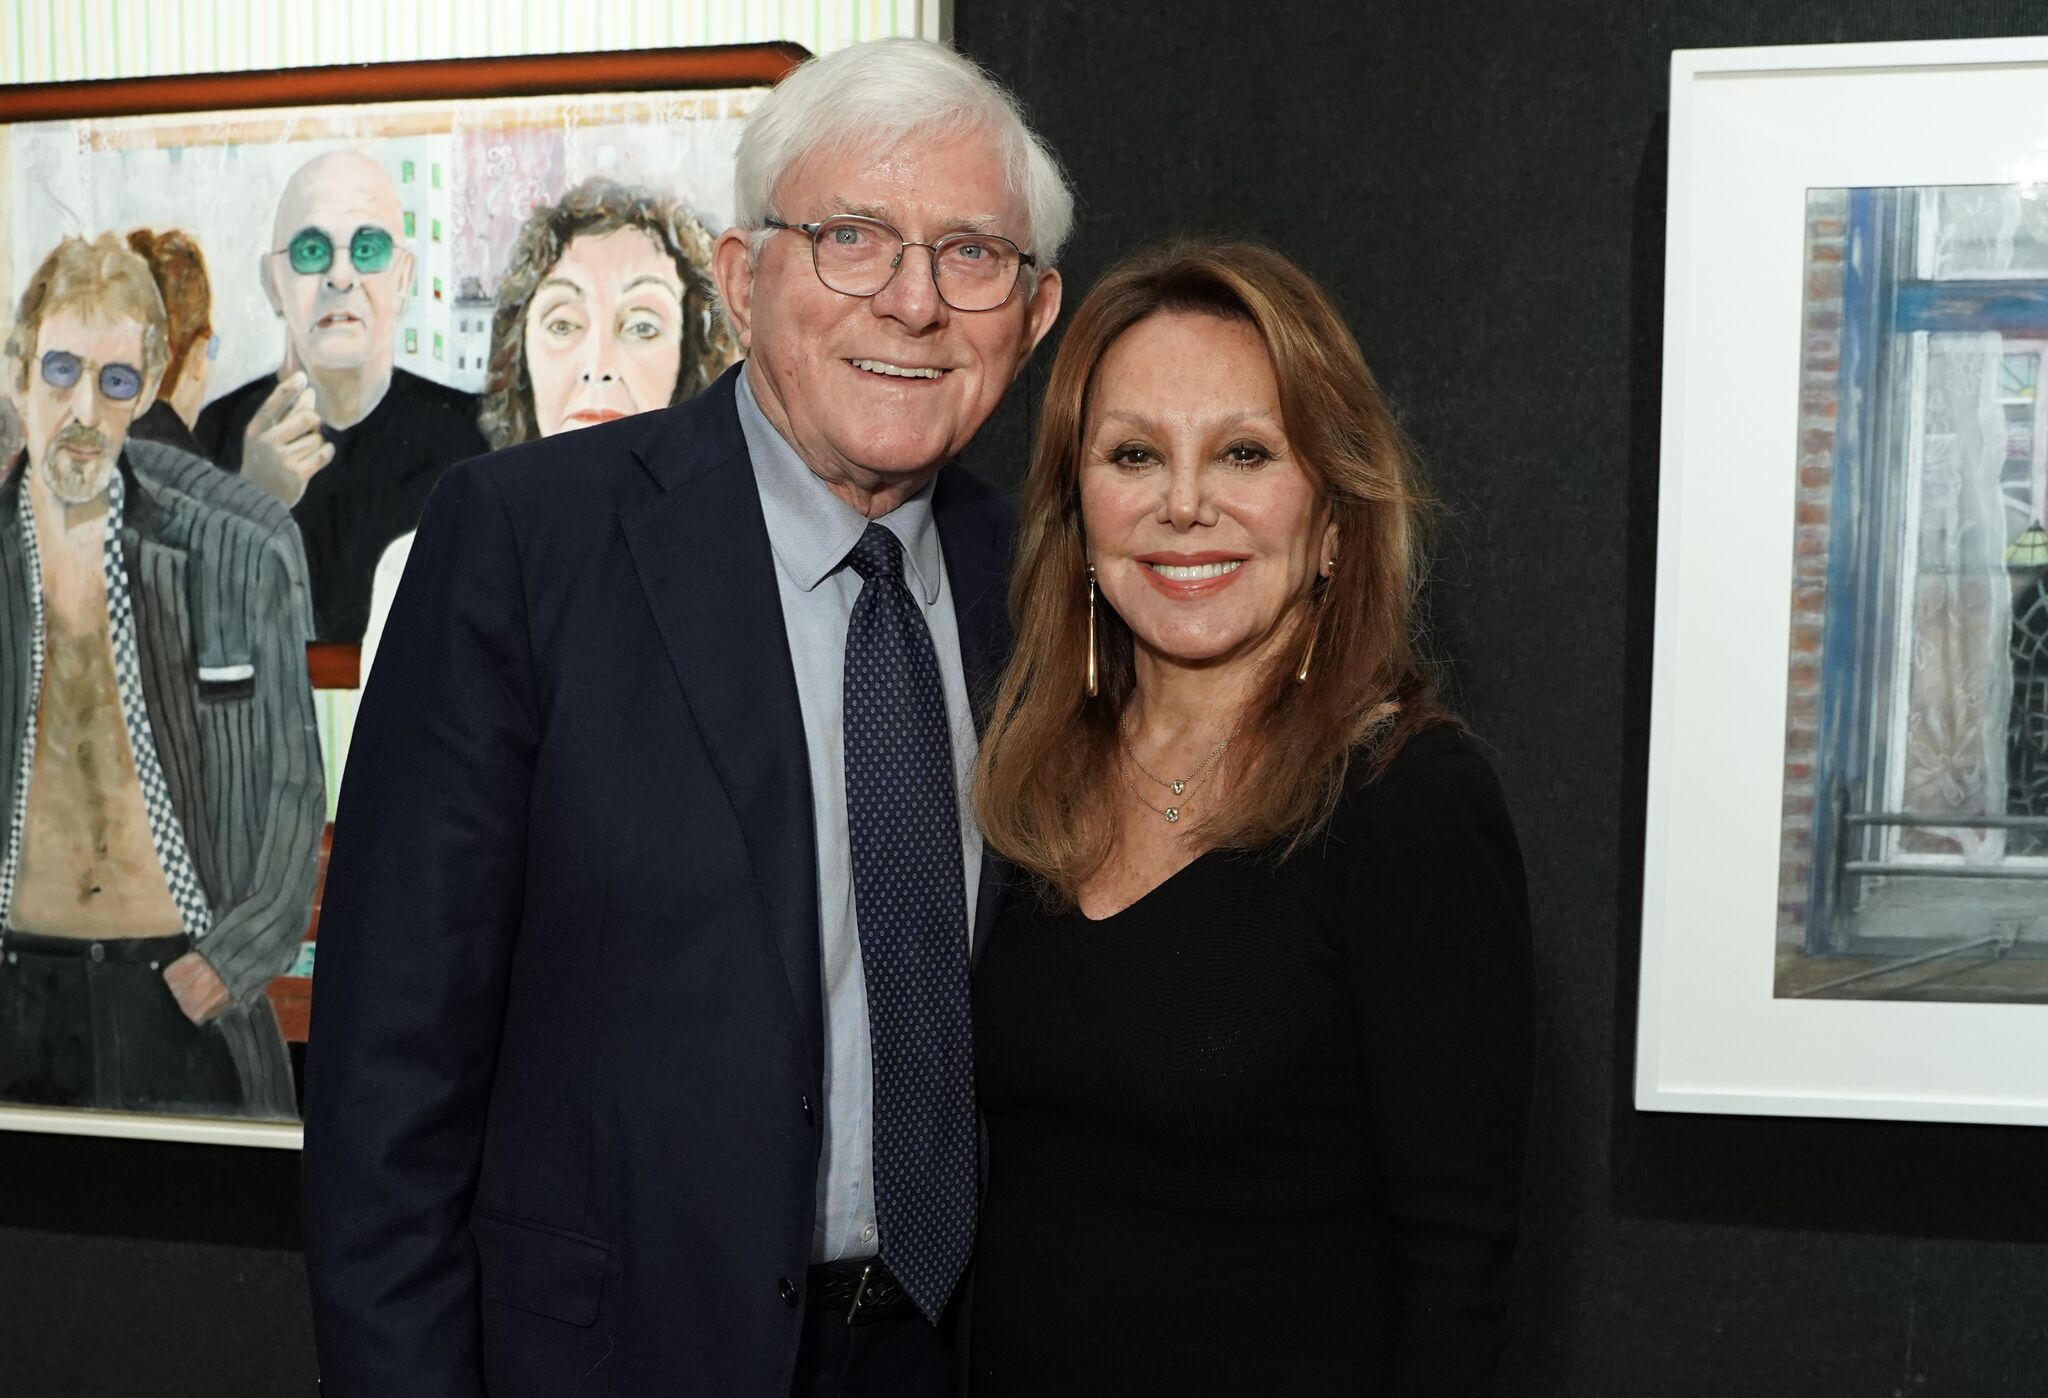 Phil Donahue and Marlo Thomas attend Joseph Fioretti exhibition at The National Arts Club | Getty Images